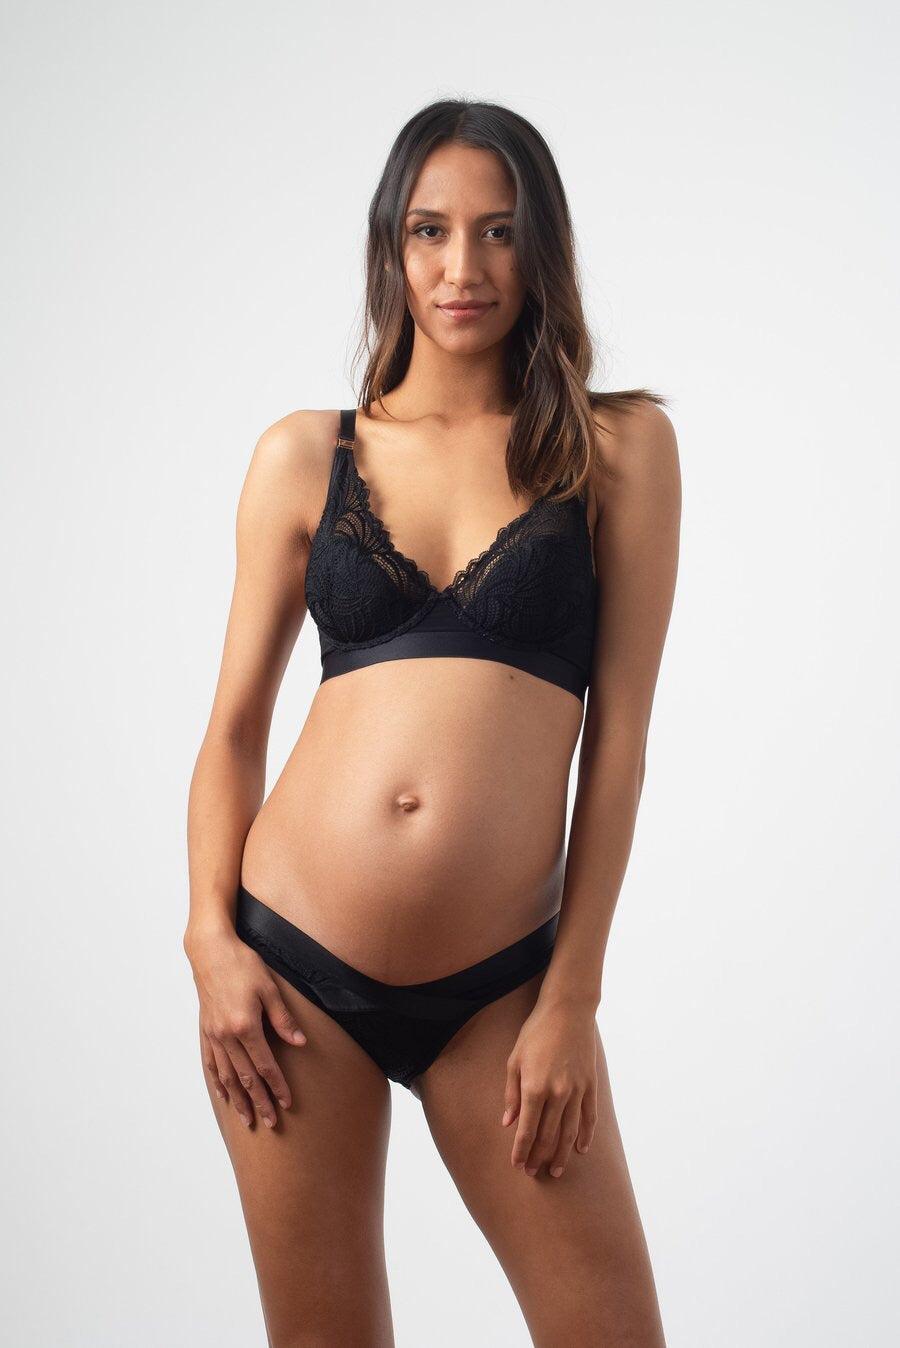 Hotmilk Project Me 'Warrior' Plunge Black Contour Nursing Bra - Flexi Underwire